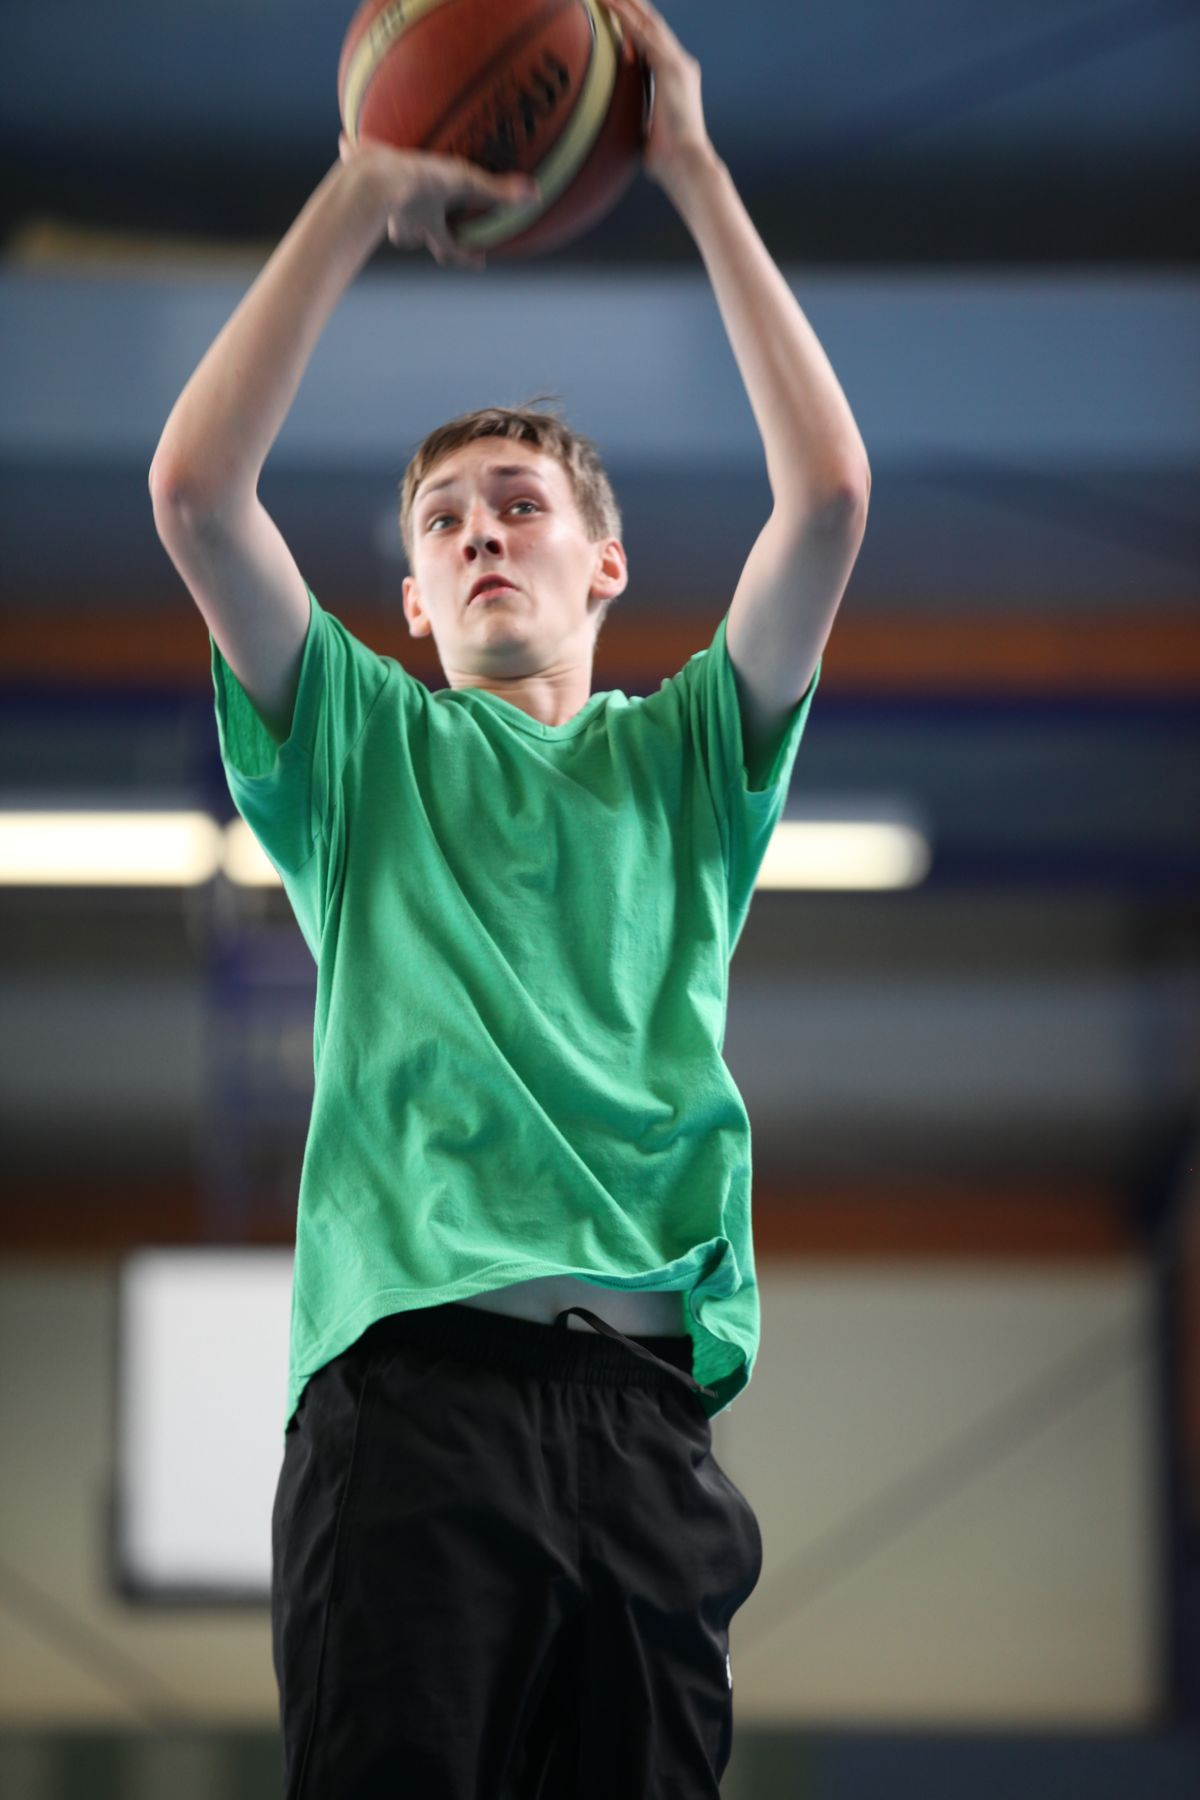 Sommer_BBall-Camp_2014_Tag 3 (37)